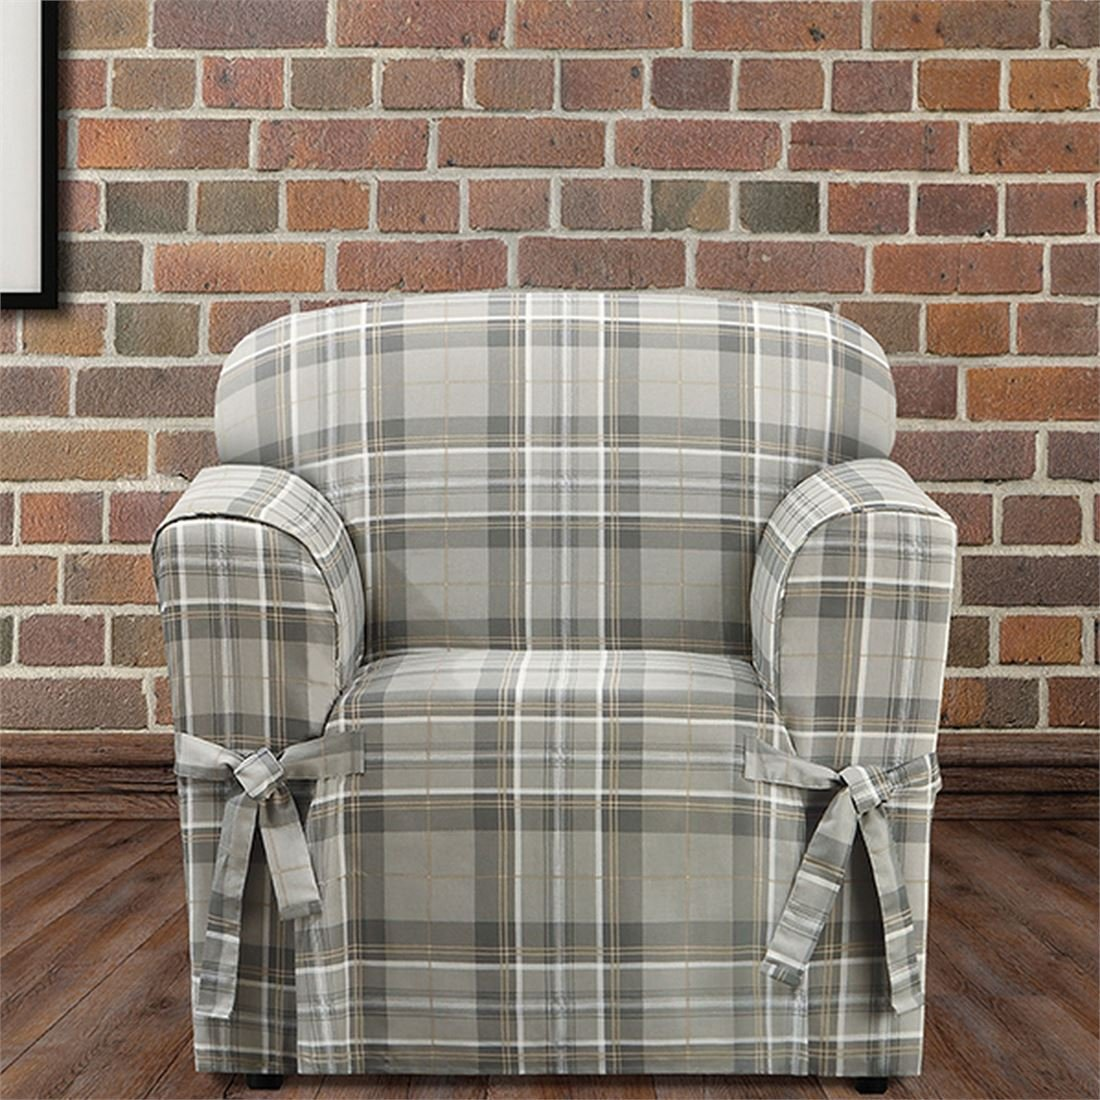 Tan Chair Slipcover New In Package Sure Fit Highland Plaid 1 Piece Slipcovers Furniture